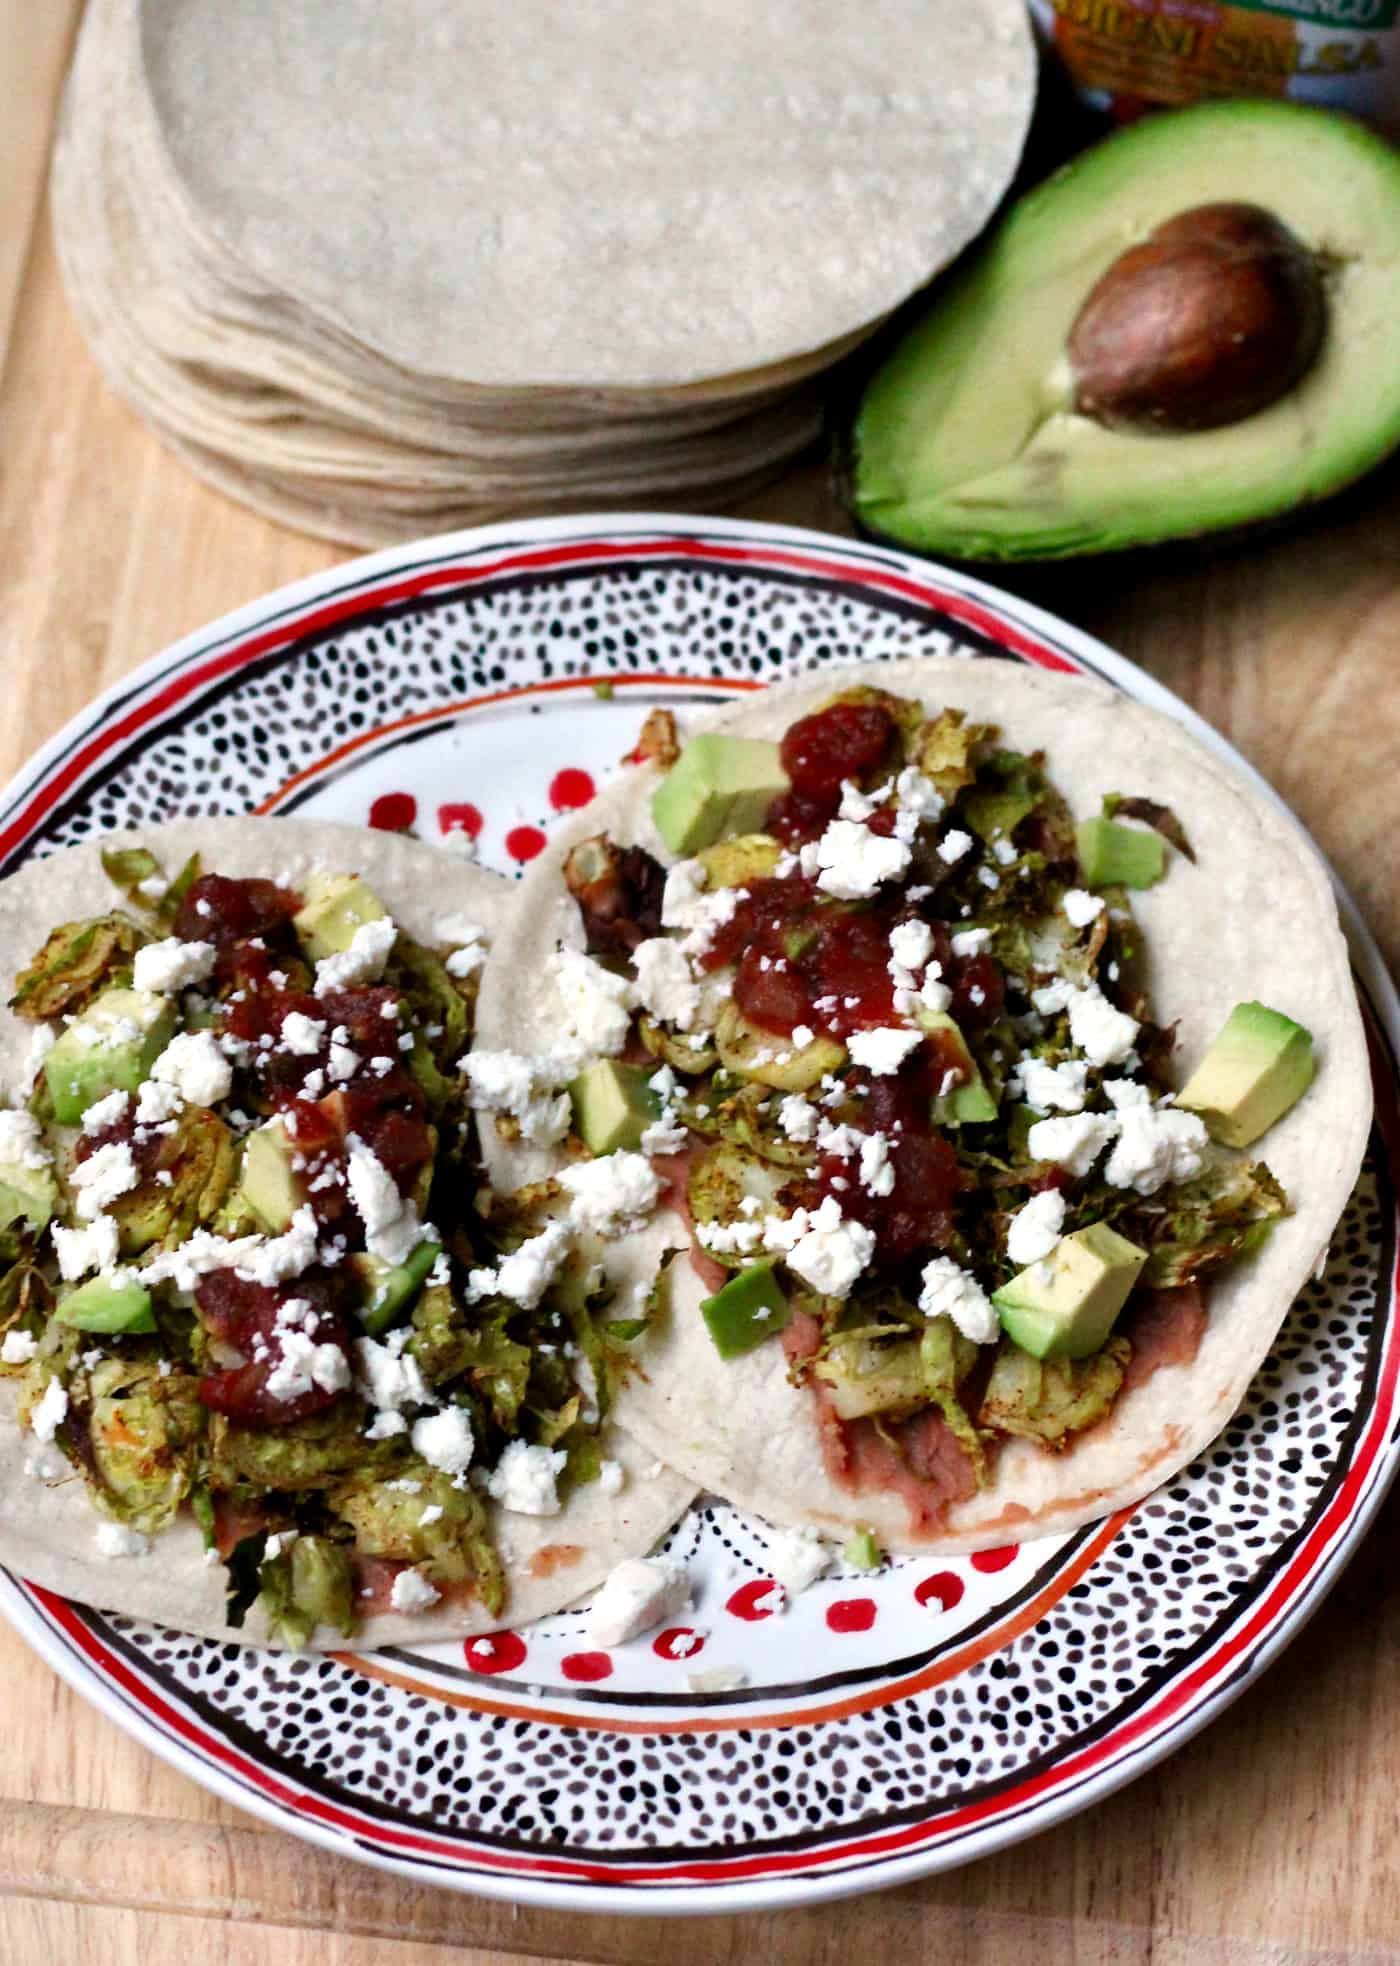 Chili-Roasted Brussels Sprouts Tacos